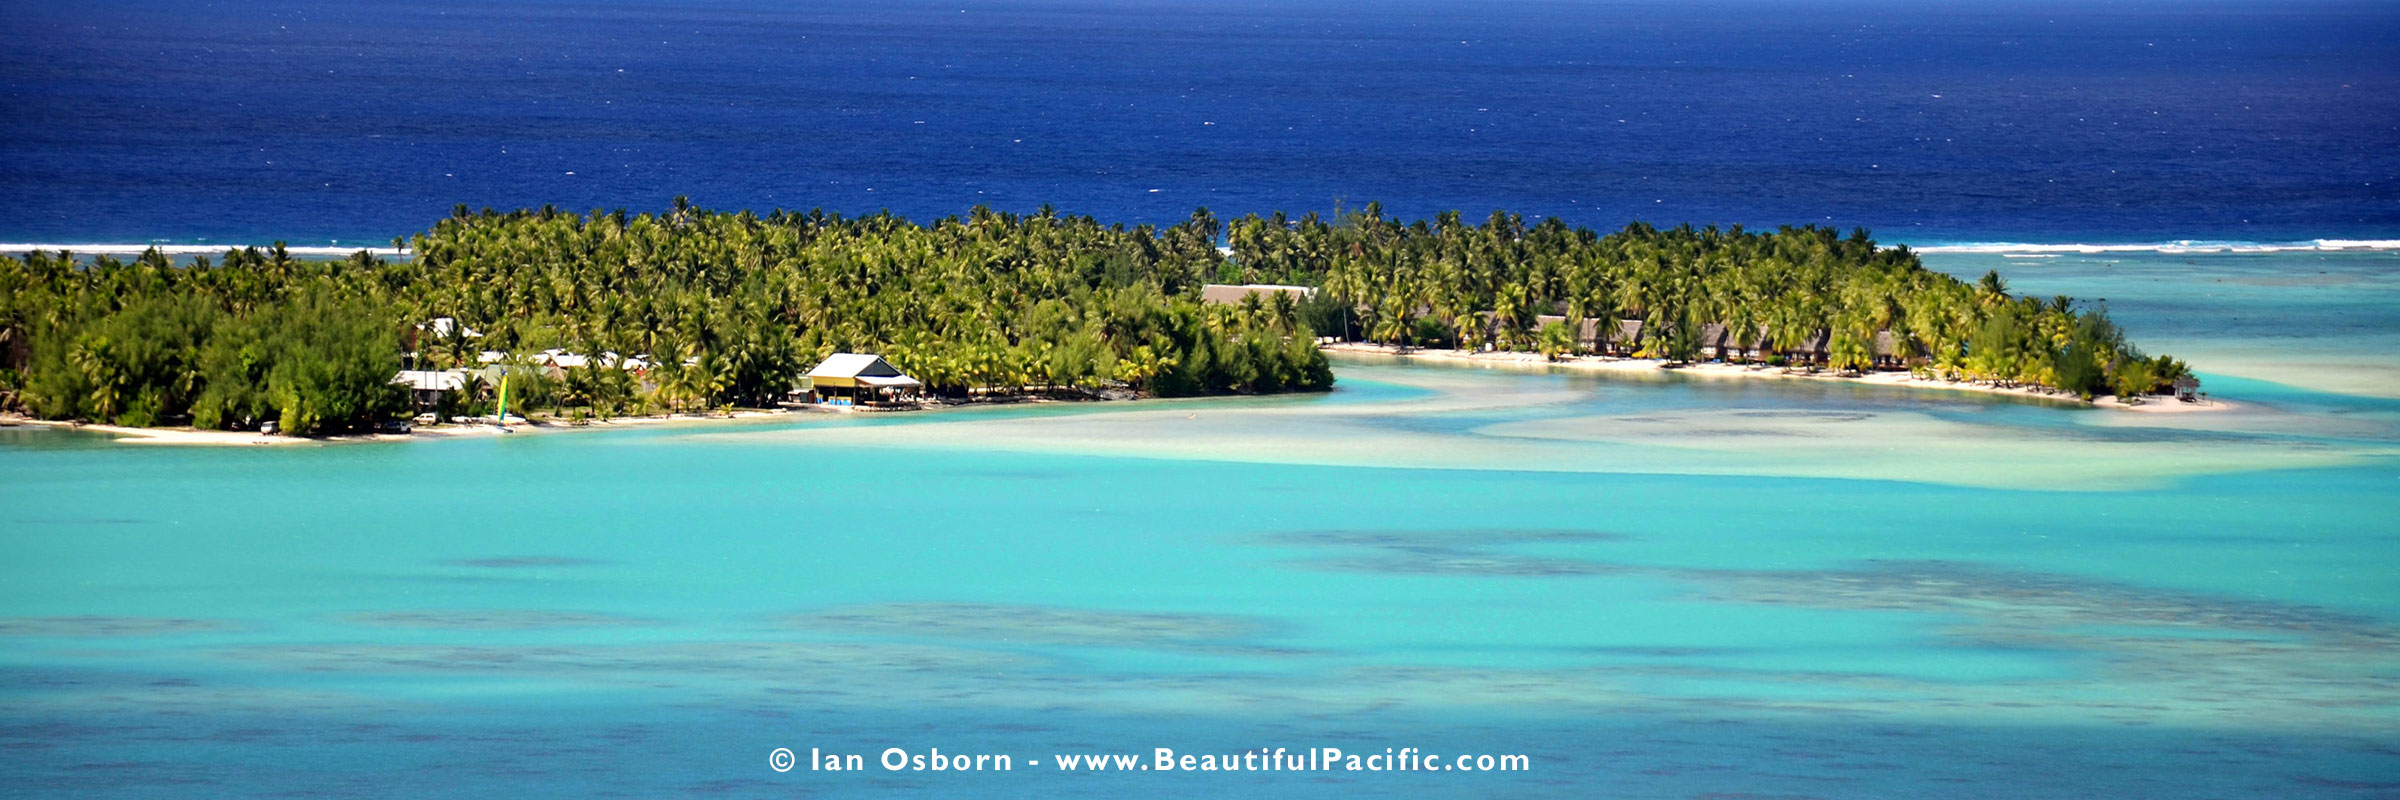 View of Samade on the Beach Resort in Aitutaki